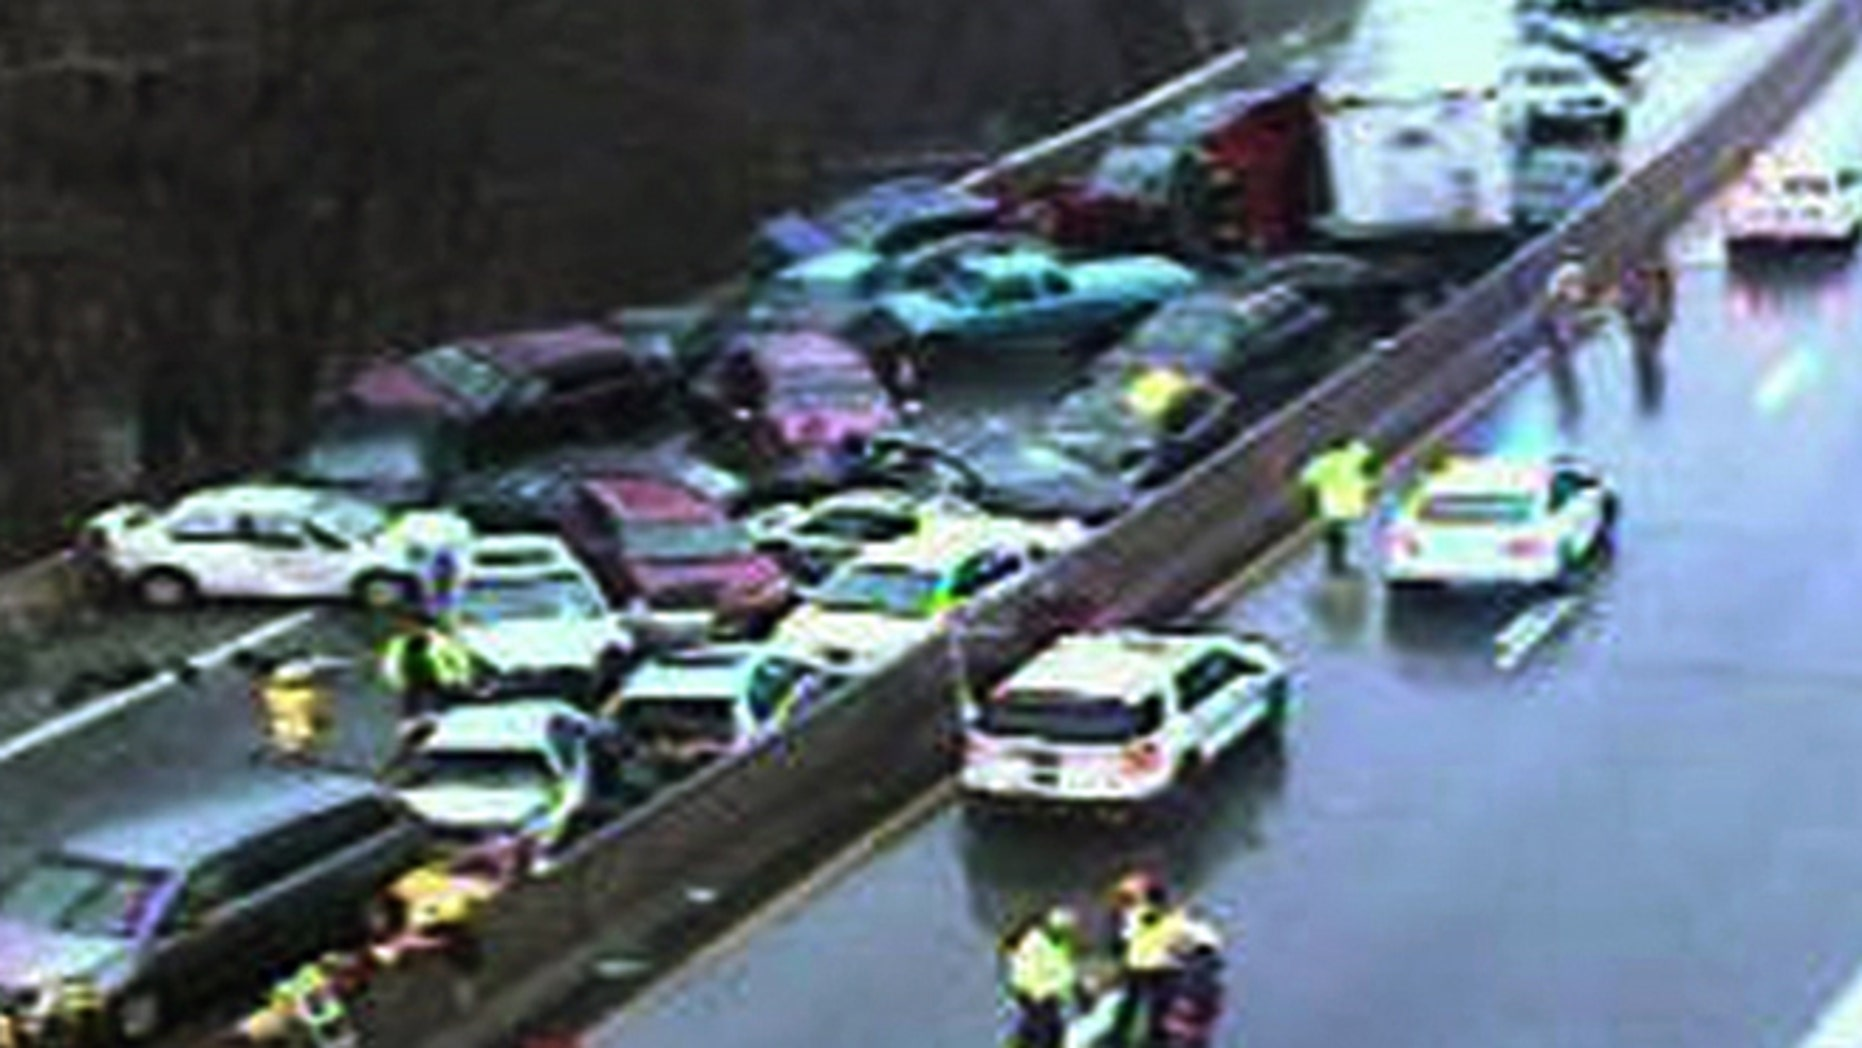 Jan. 18, 2015: In this image from PennDOT via FoxTV, more than 20 cars are piled up on I-76 in Philadelphia after freezing rain on Sunday.